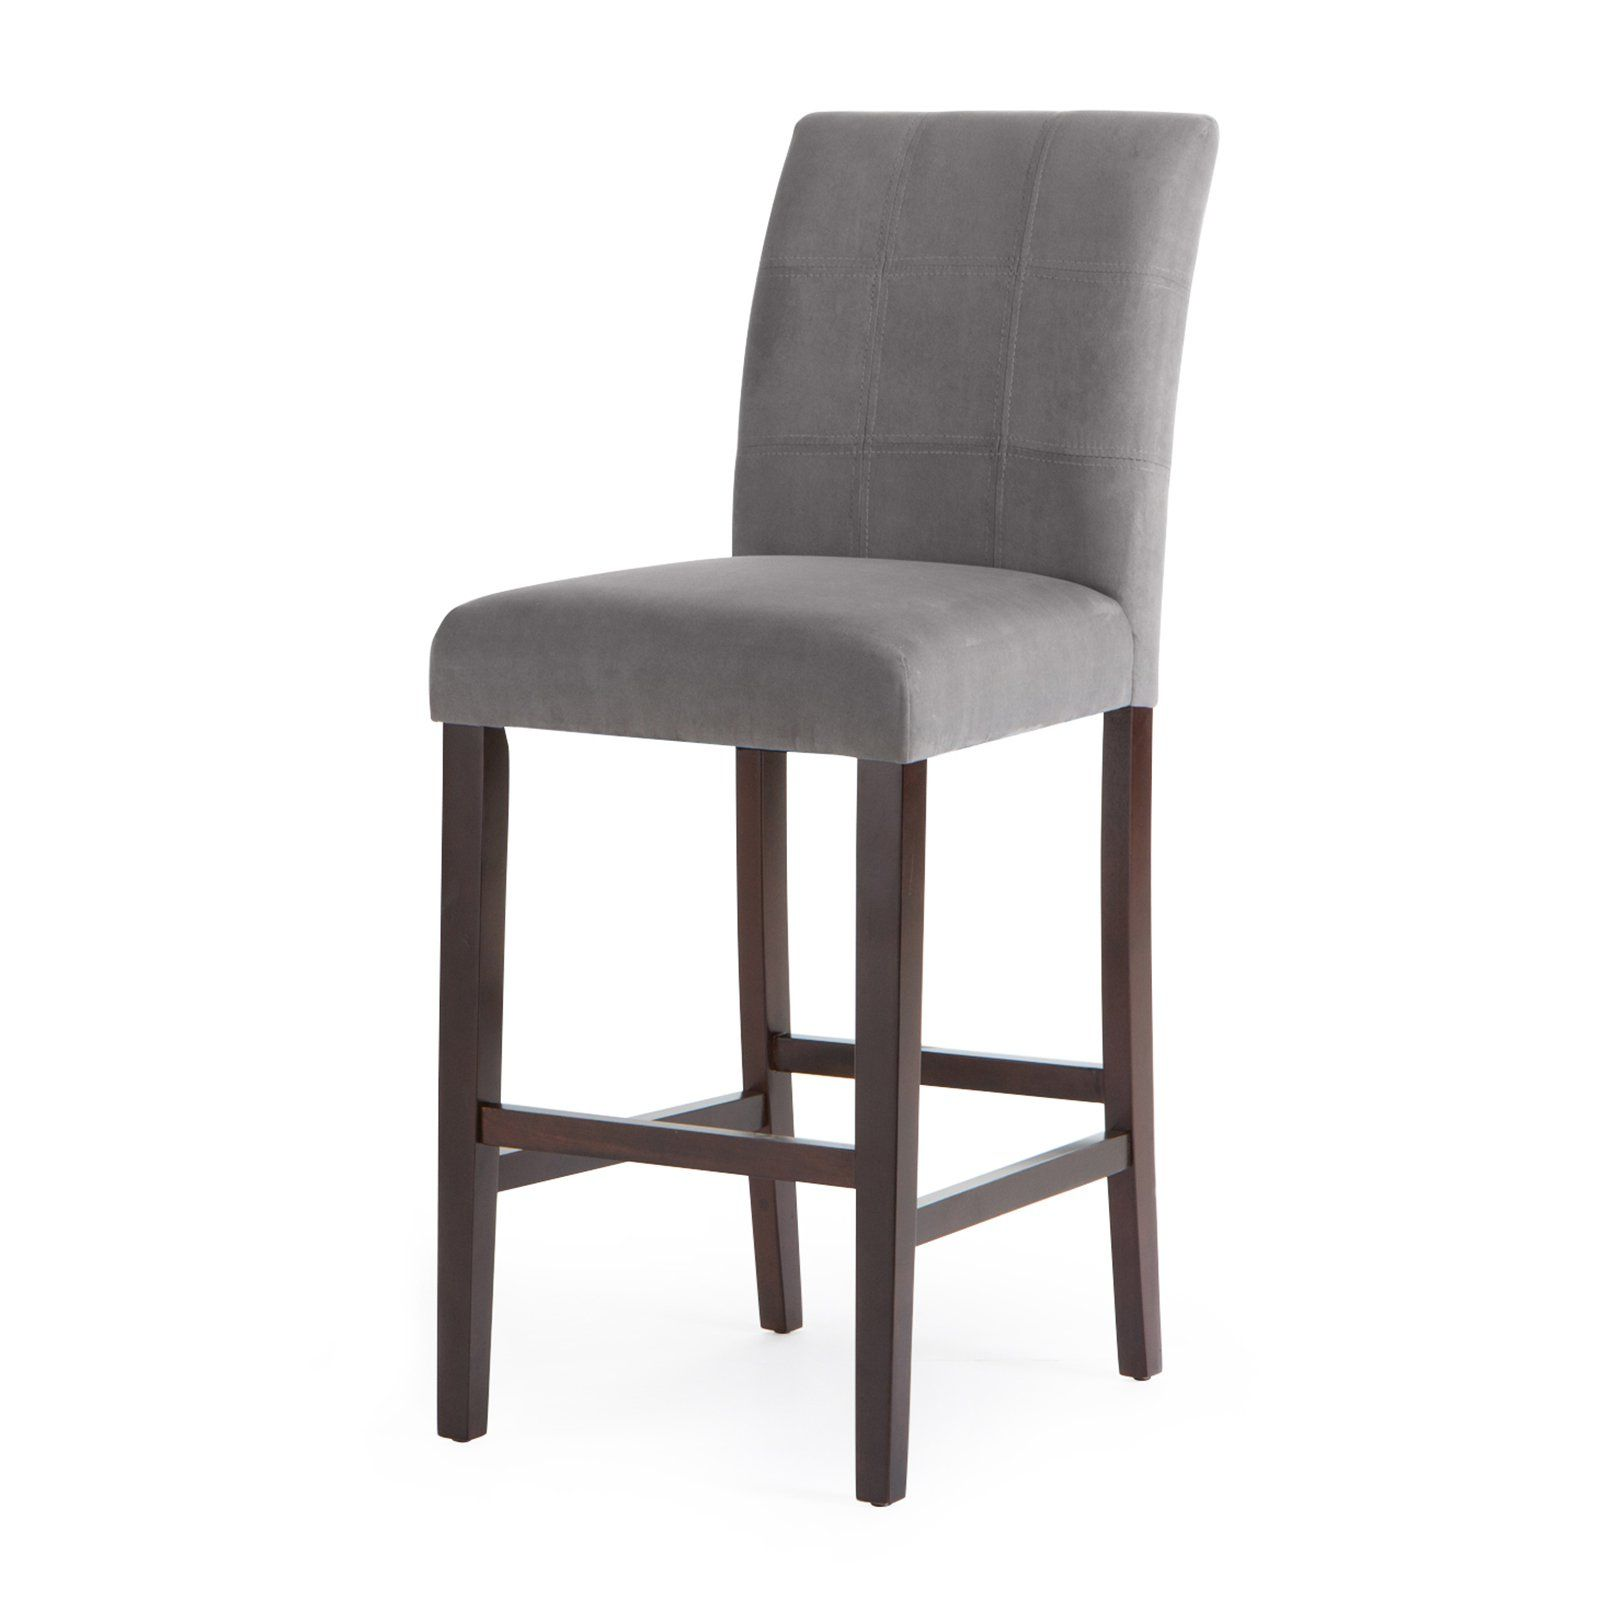 77 Cheap Bar Stools With Arms Luxury Modern Furniture Check More At Http Evildaysoflucklessjohn Com 50 C Affordable Bar Stools Bar Stool Chairs Bar Stools